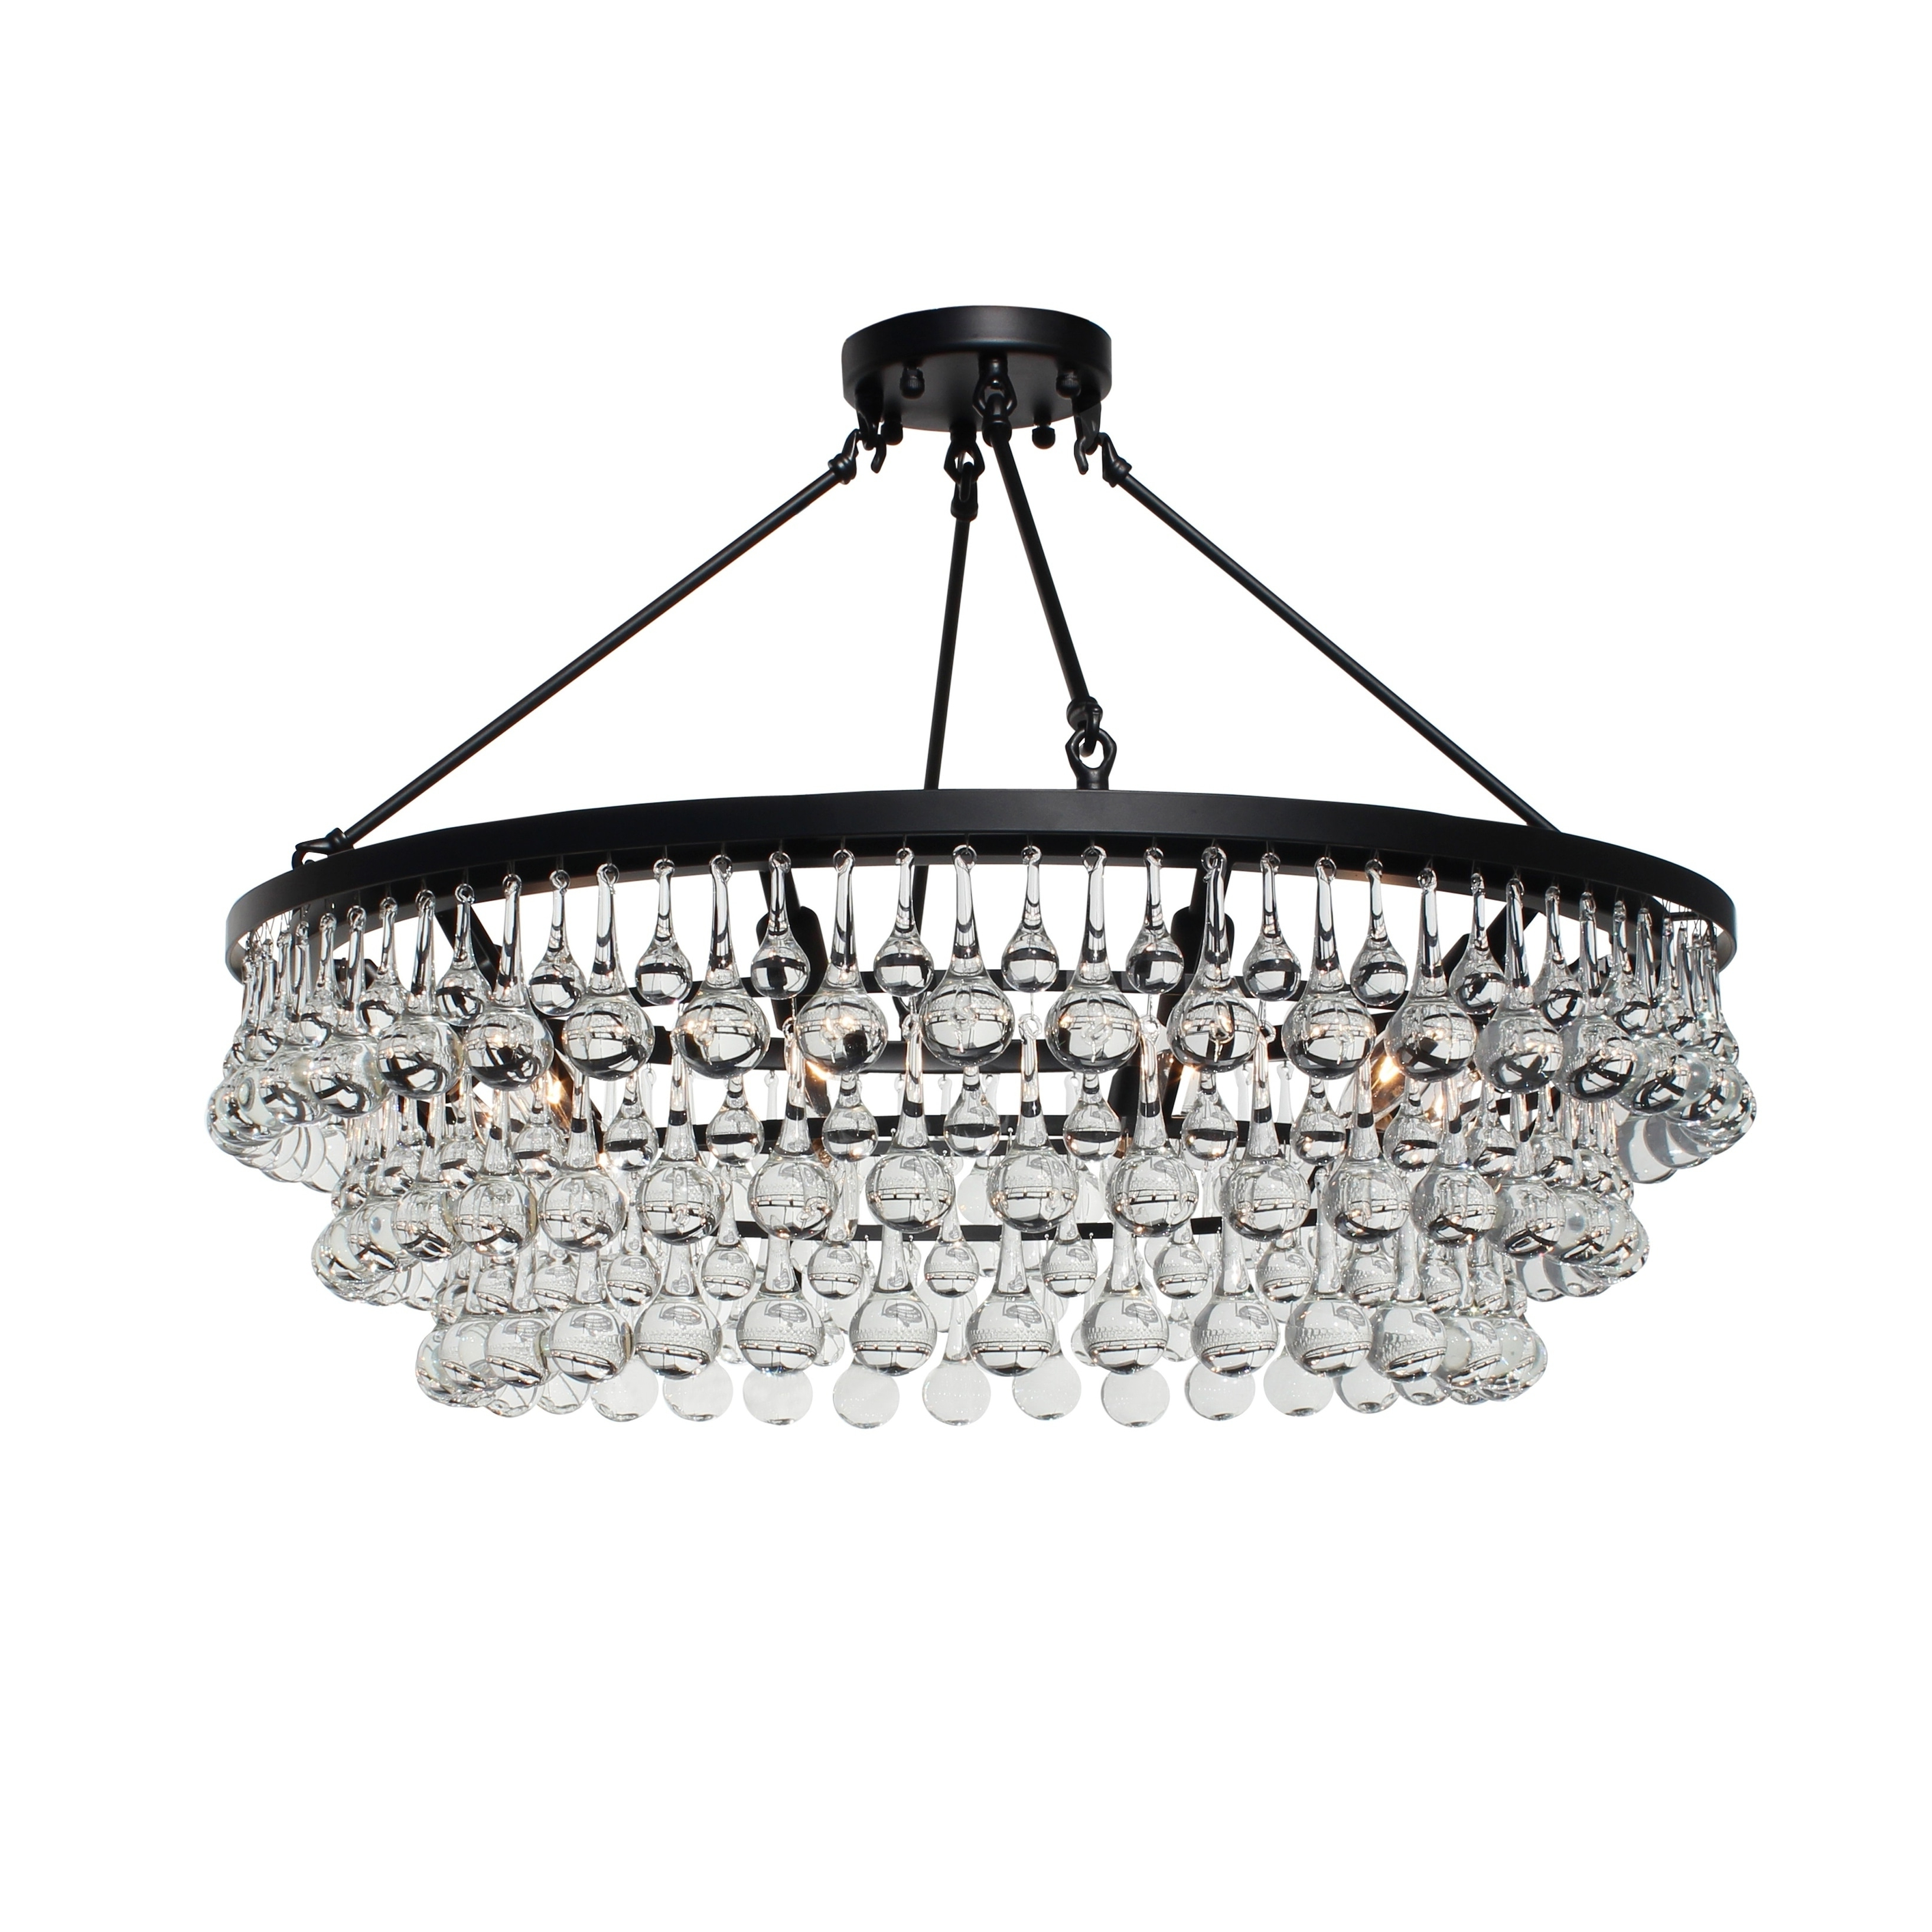 Mcknight 9 Light Chandeliers With Newest Celeste Glass Flush Mount Crystal Chandelier, Black – N/a (View 9 of 20)